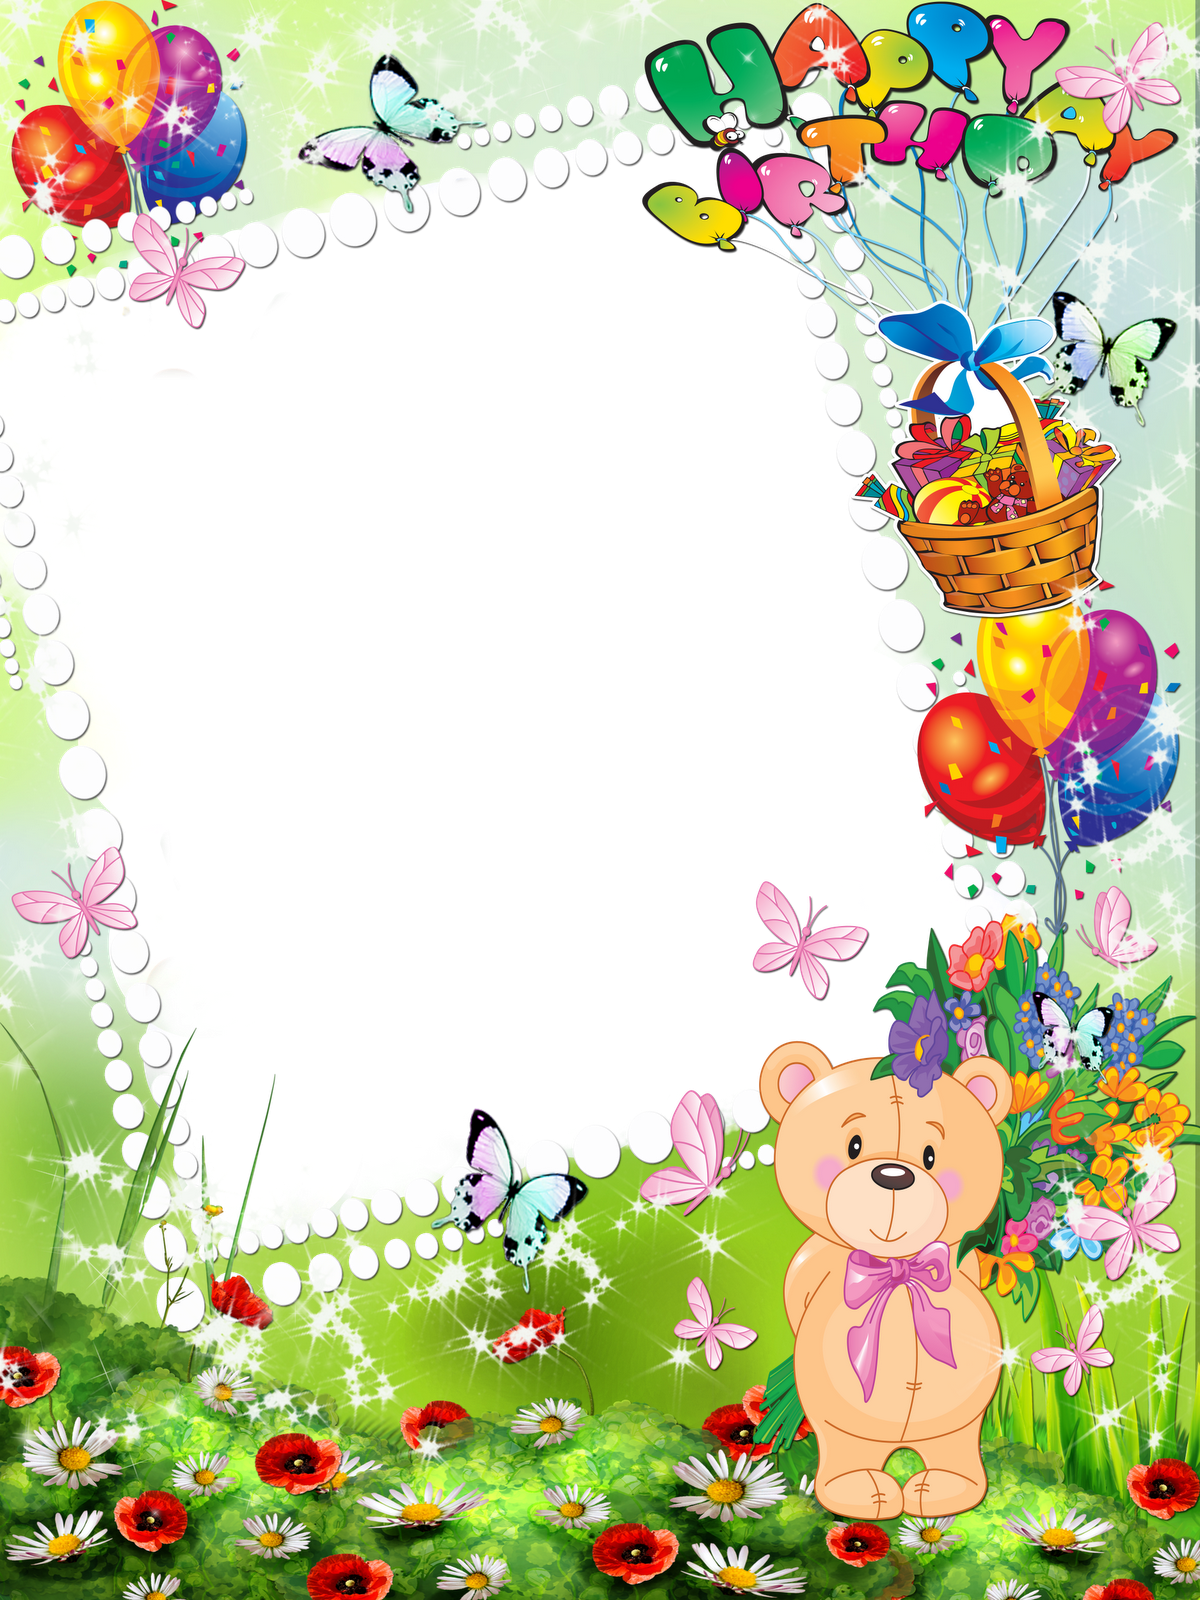 Happy png borders frames. Nature clipart birthday clip black and white